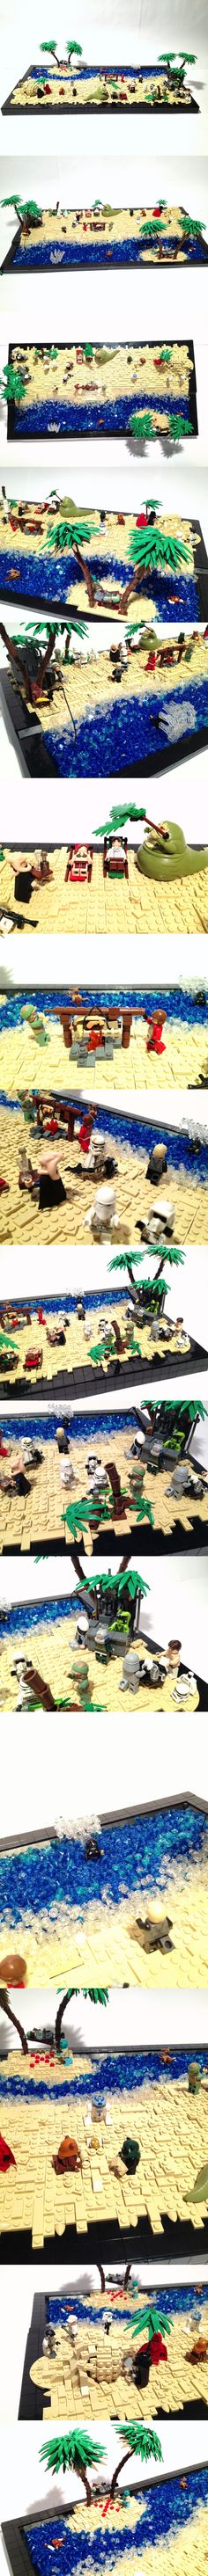 Star Wars beach party! Absolutely AMAZING! - For more of my favourite Lego MOCs visit http://www.matthewfritz.com/lego